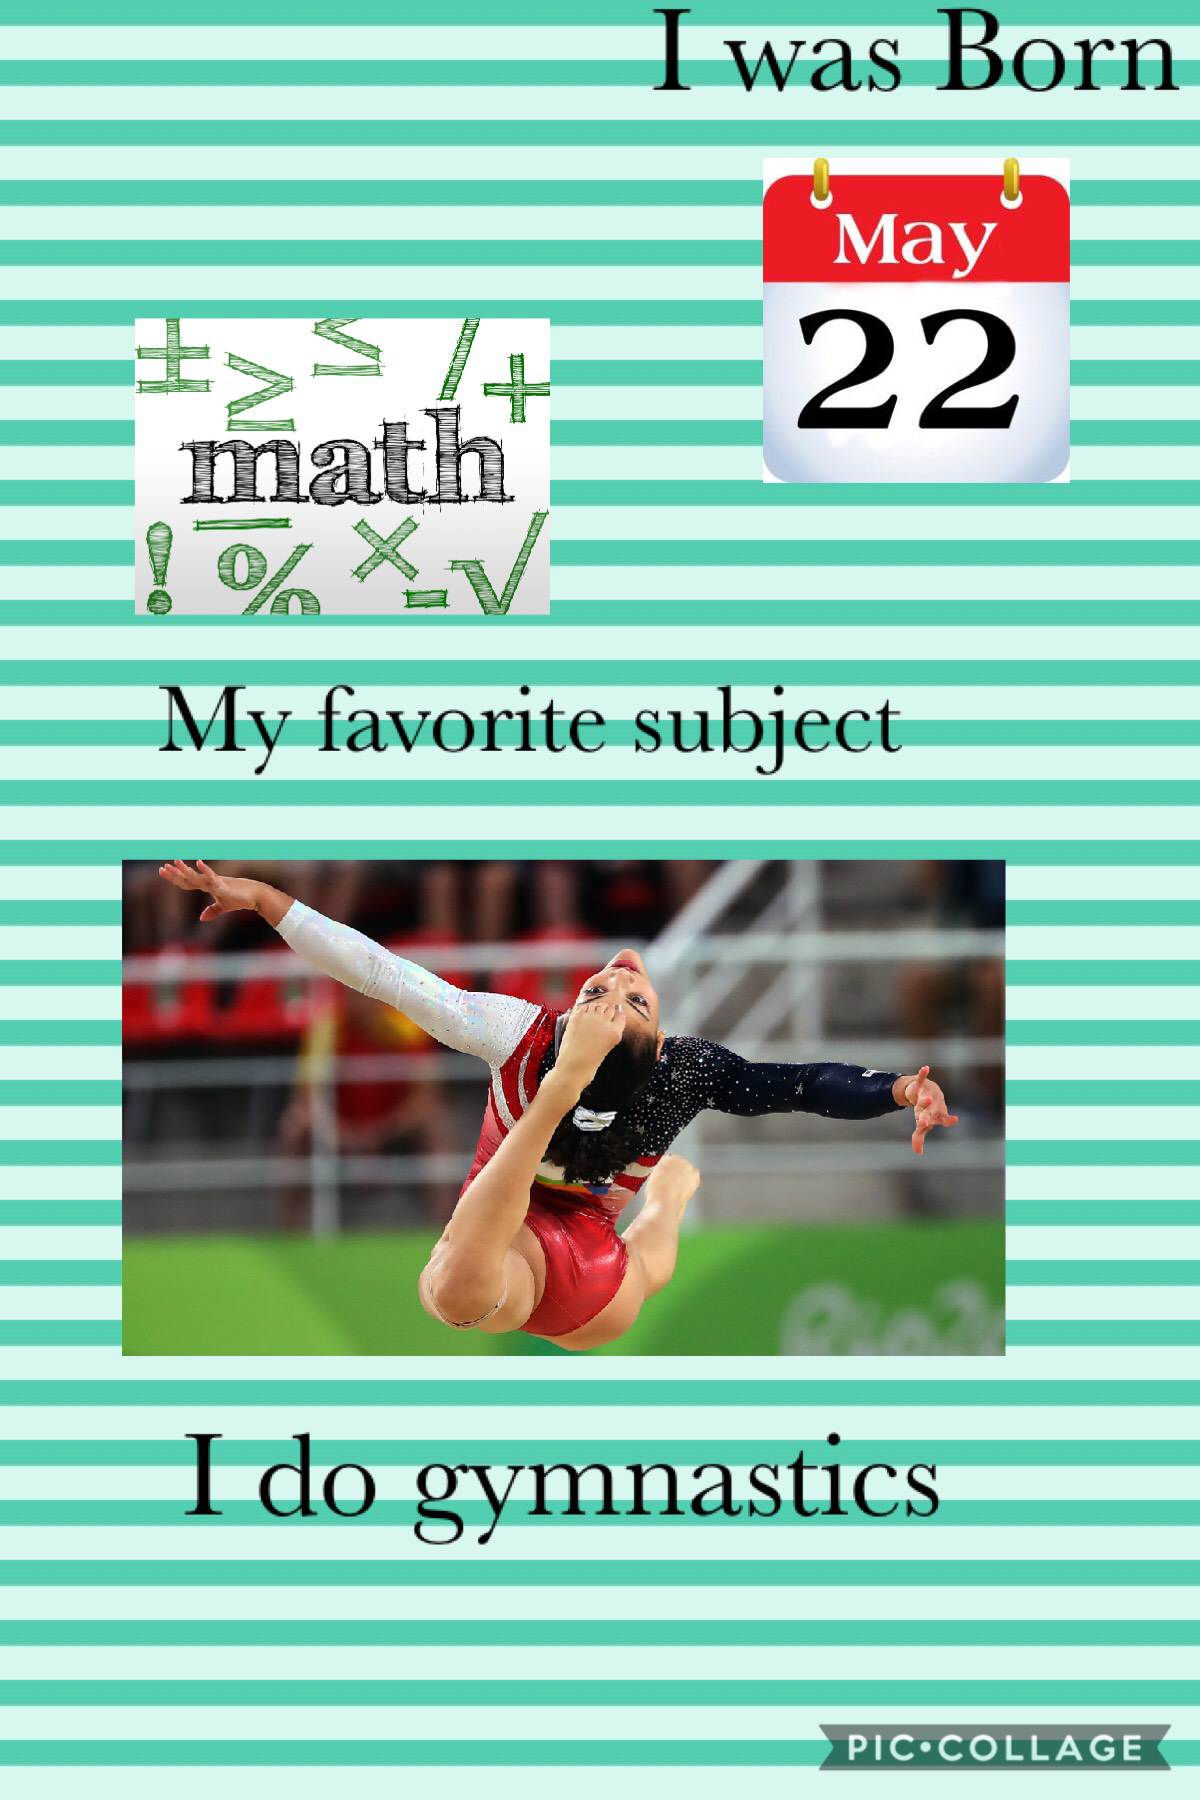 Collage by kristina5gymnast